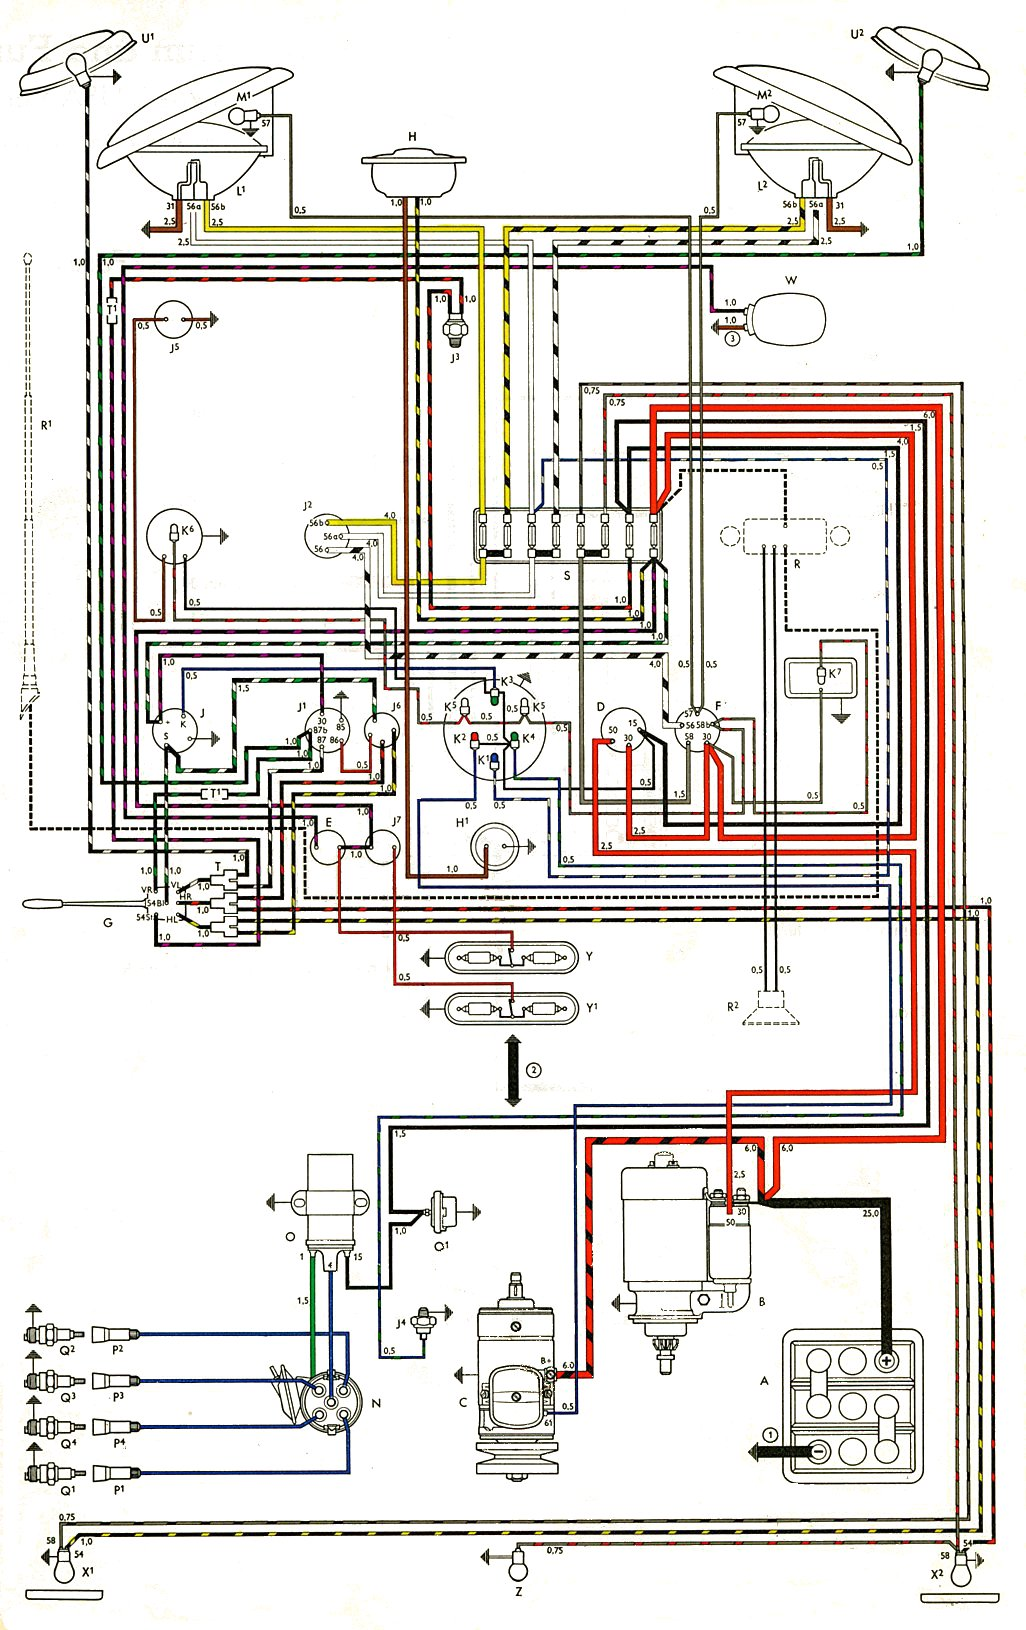 bus_63_USA thesamba com type 2 wiring diagrams vw wiring diagrams at gsmportal.co